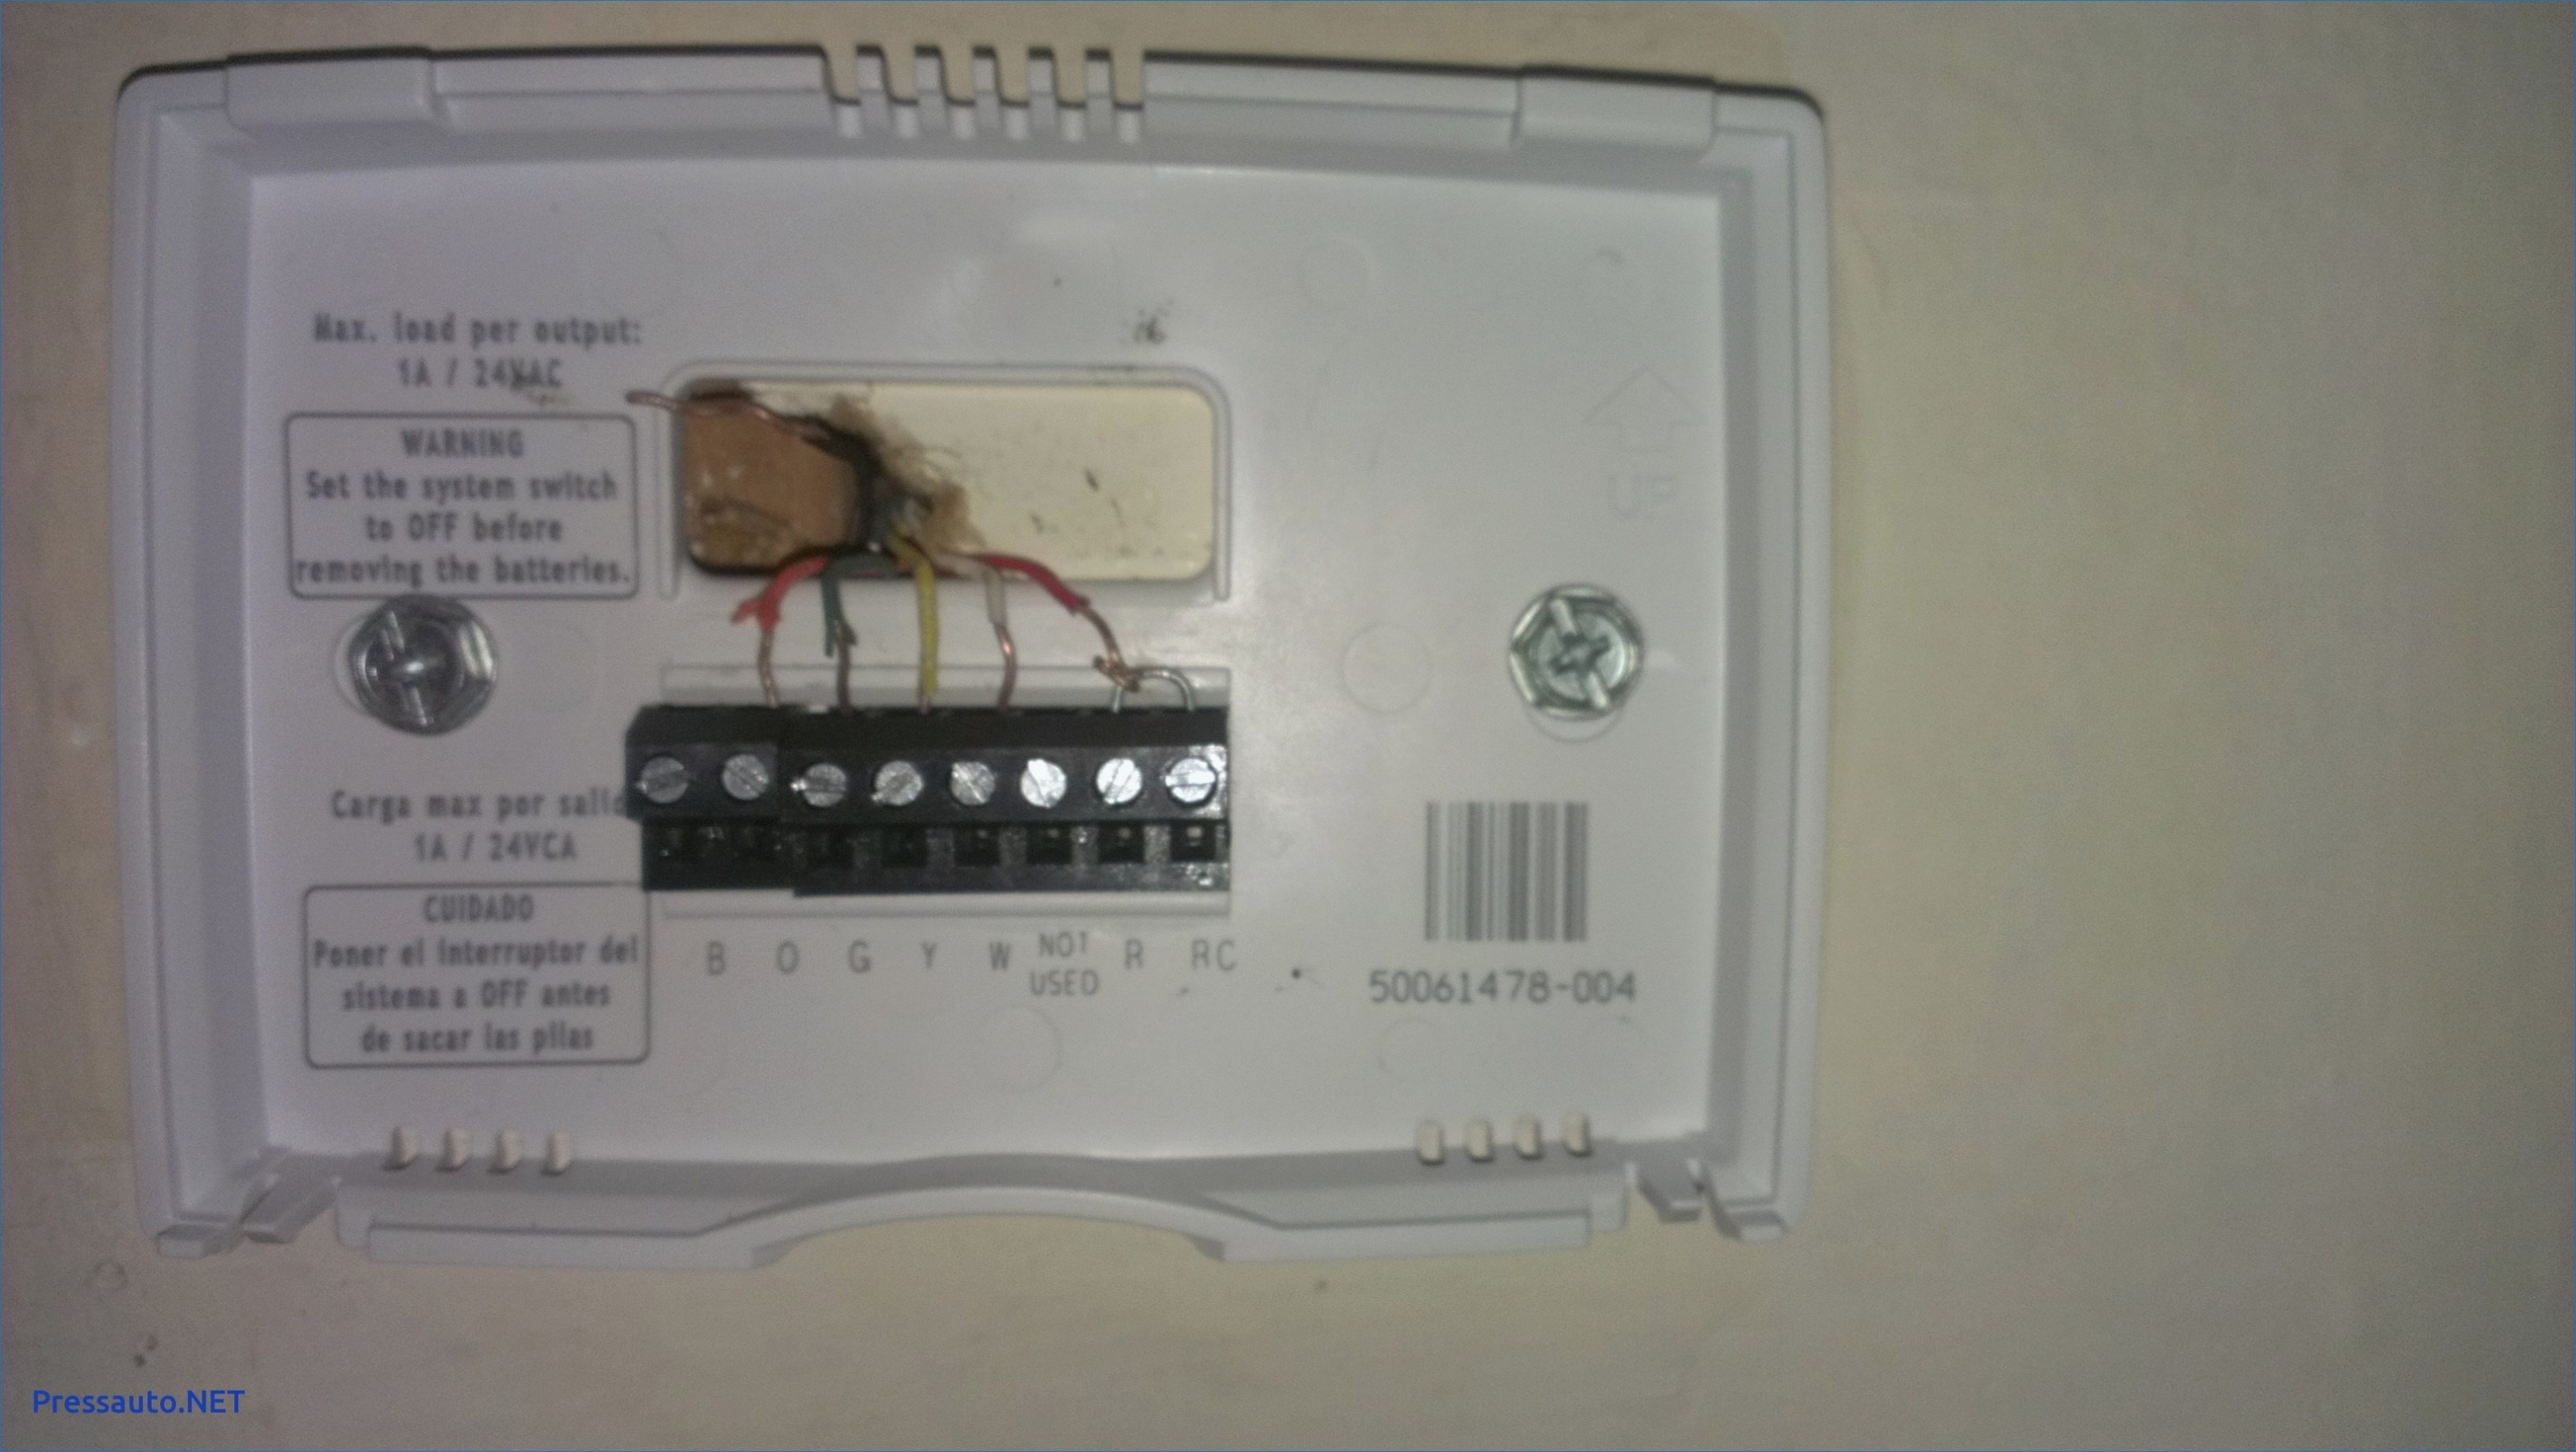 Luxpro Thermostat Wiring Diagram - Wiring Diagrams Img - Honeywell Wifi Thermostat Wiring Diagram